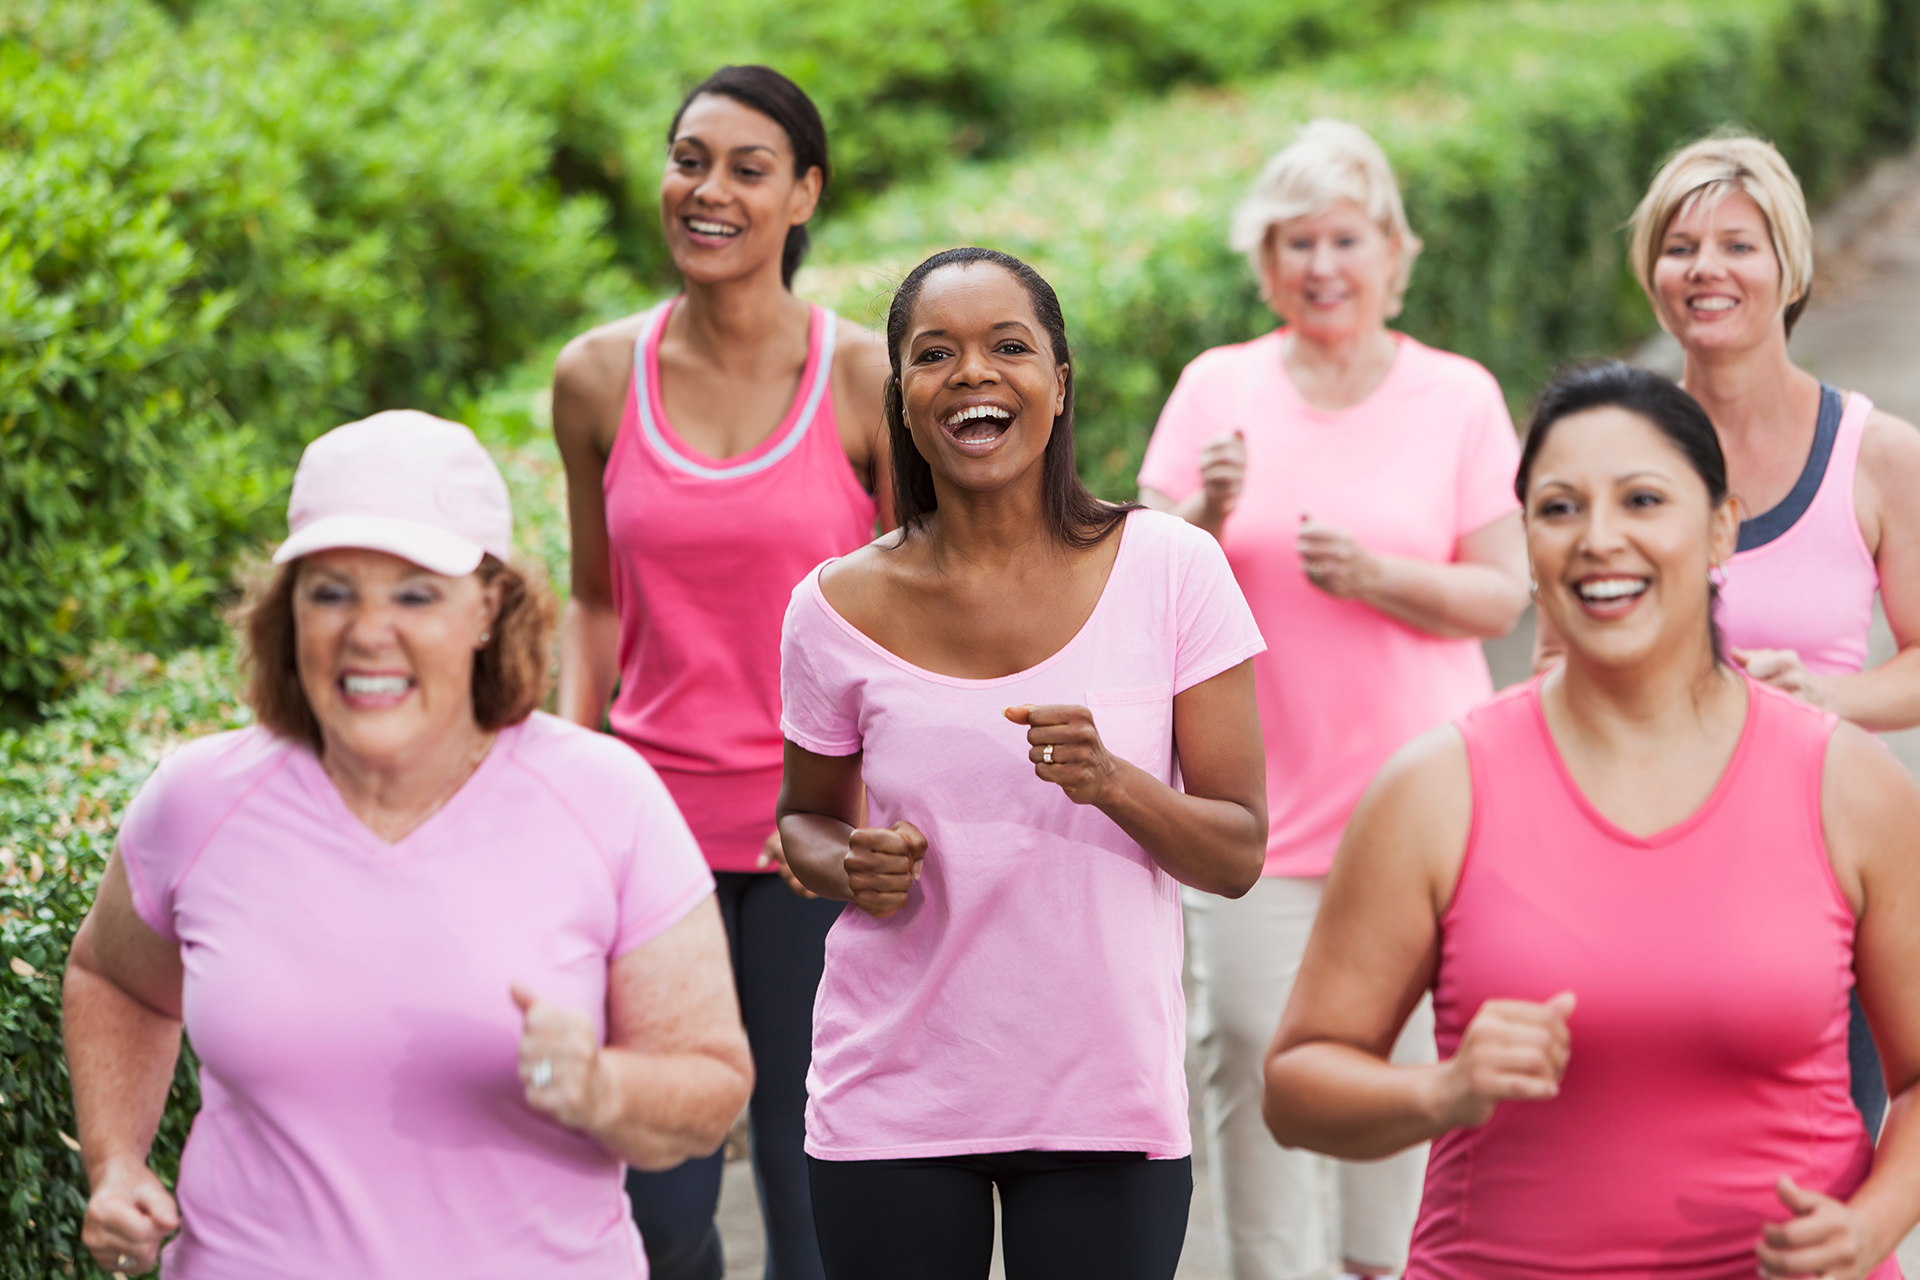 Multi-ethnic group of women wearing pink, participating in breast cancer rally.  Focus on African American woman in middle.